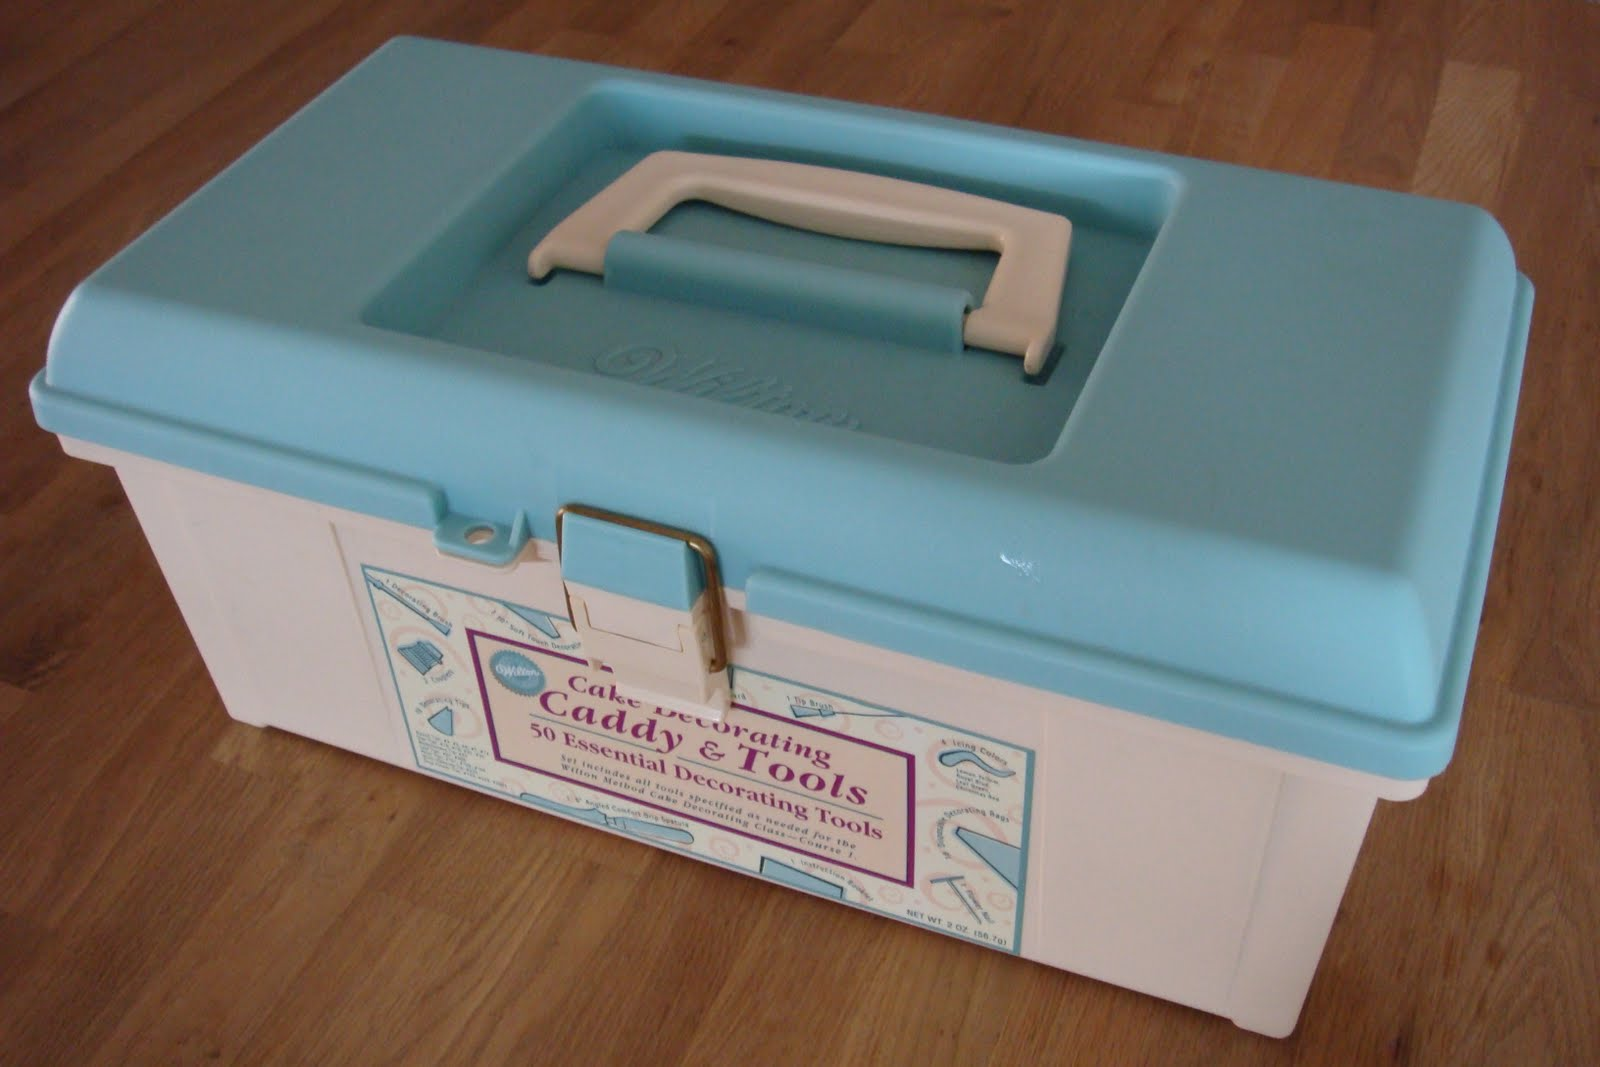 Cake Decorating Equipment Box : Cookiss @ Sheryl s Kitchen: My Wilton Cake Decorating Tool Box